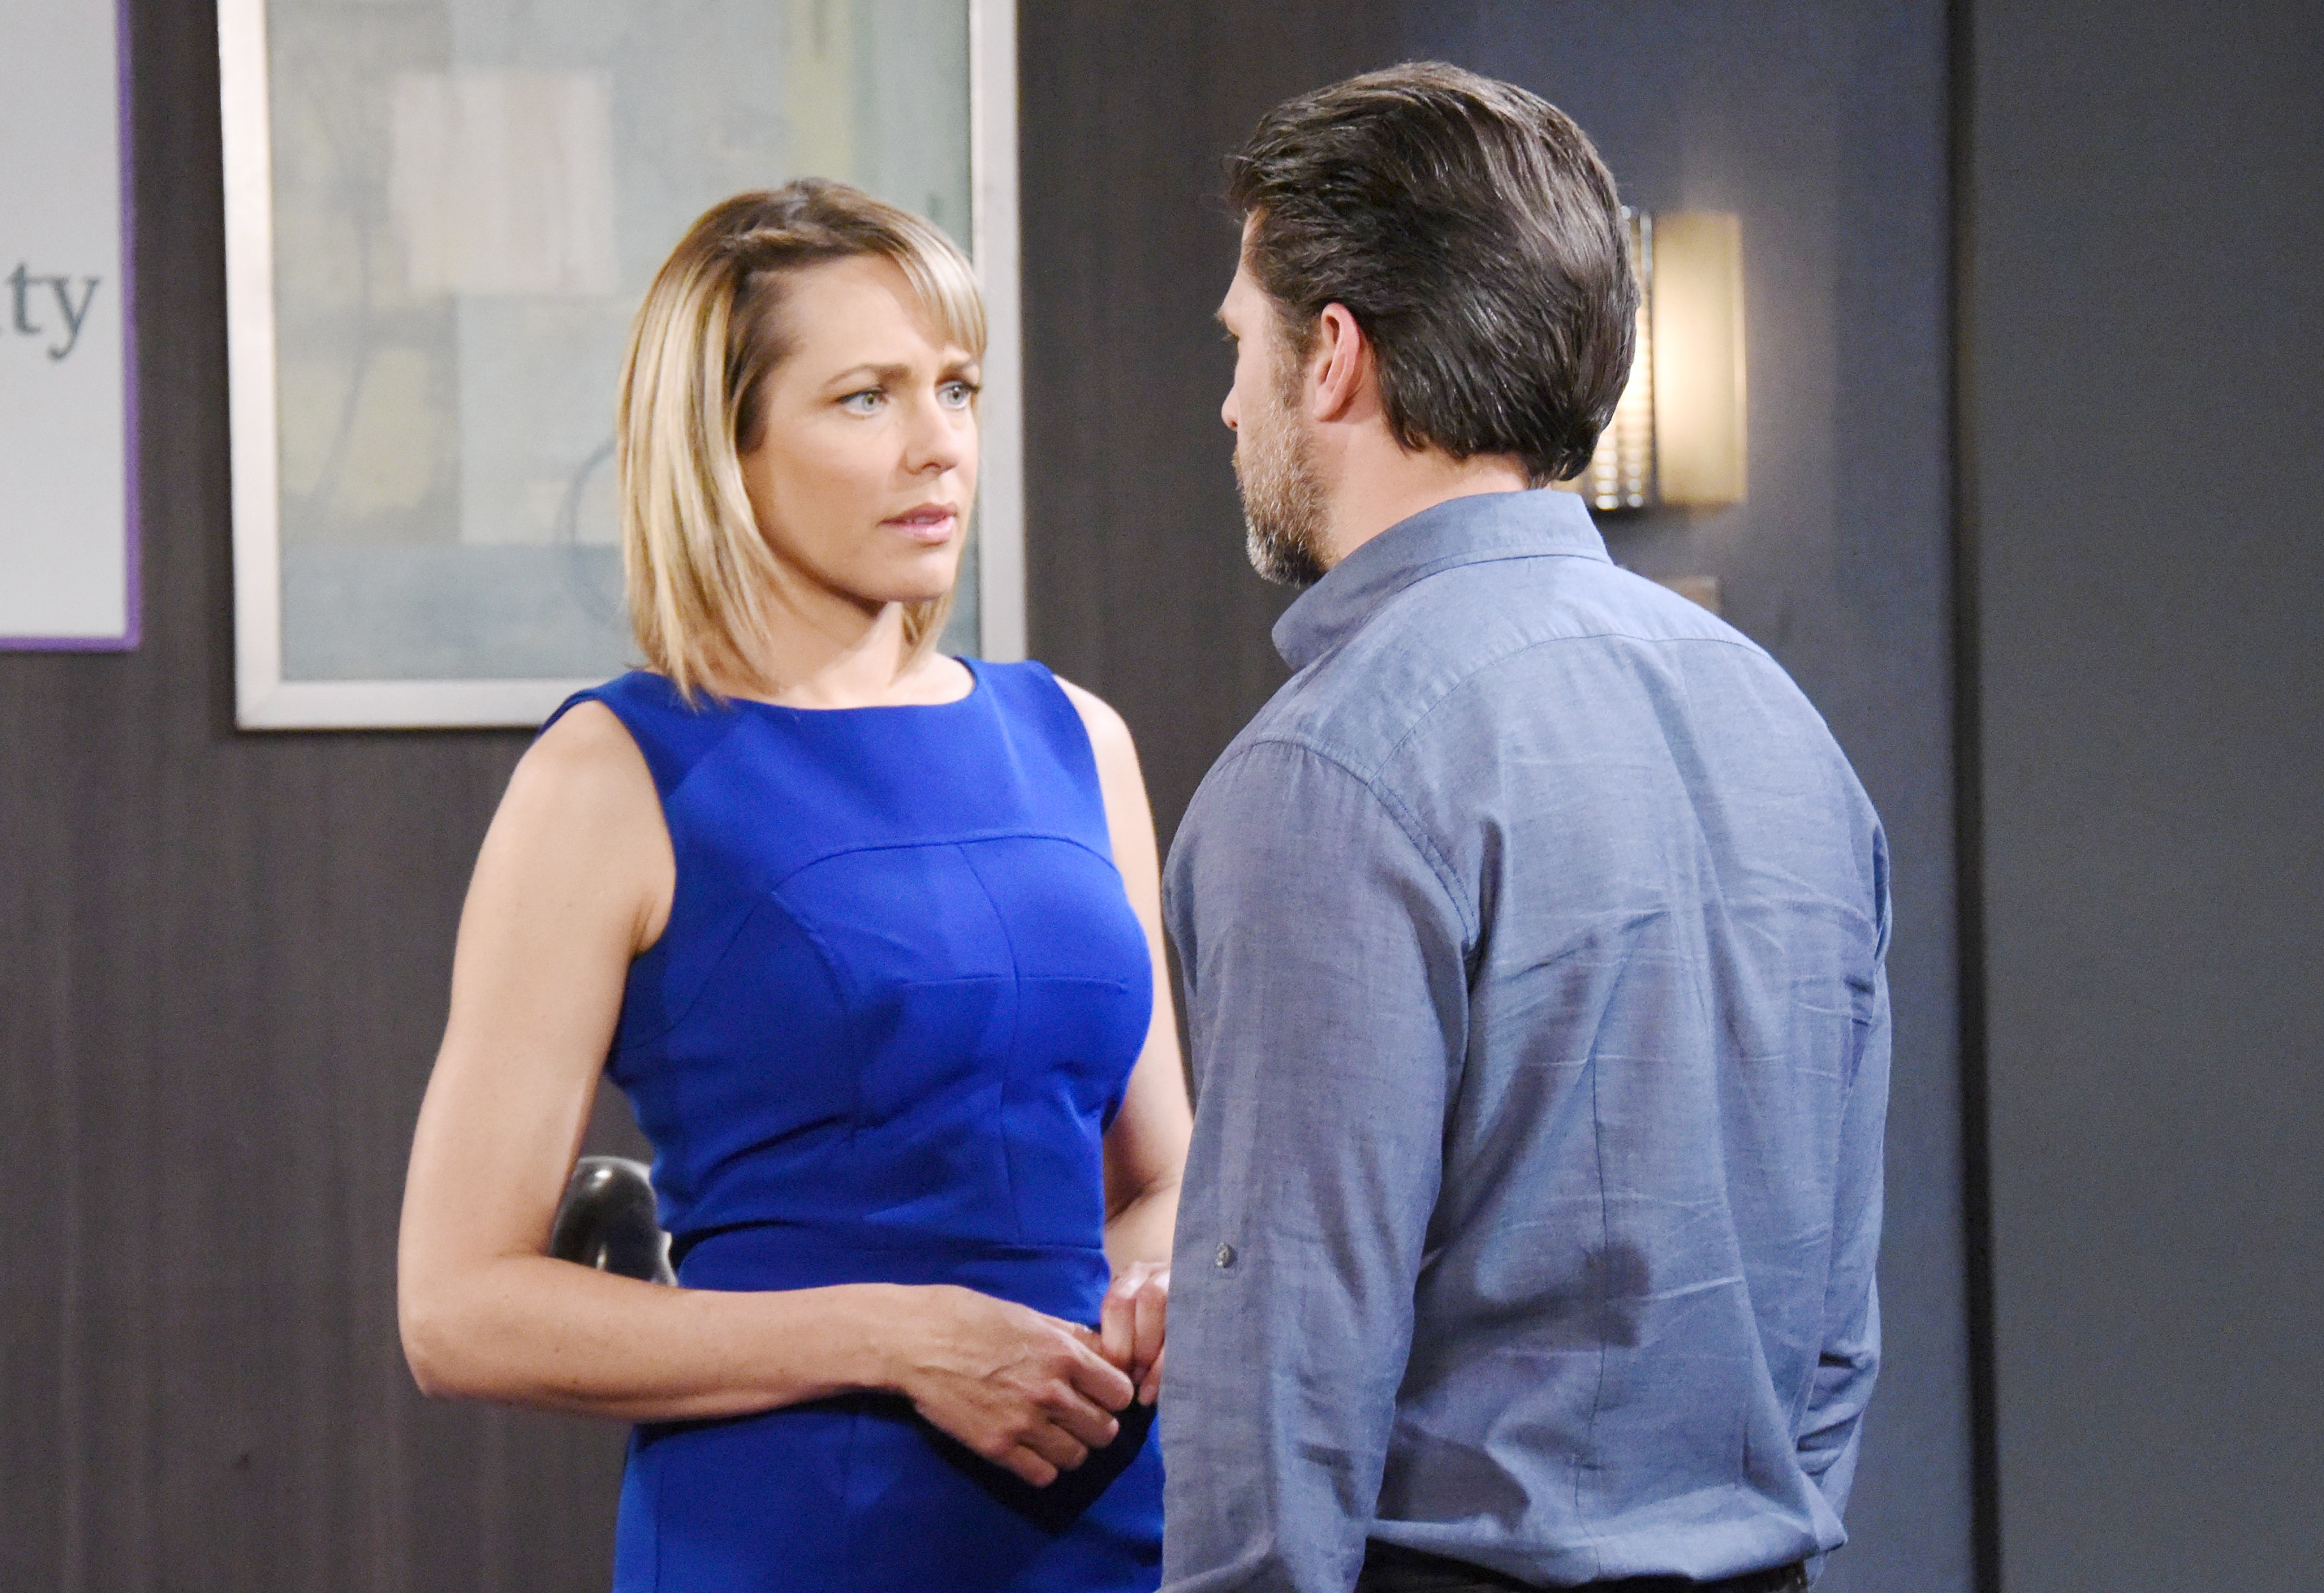 Days of Our Lives Spoilers: Nicole confesses to Eric that she loves him.